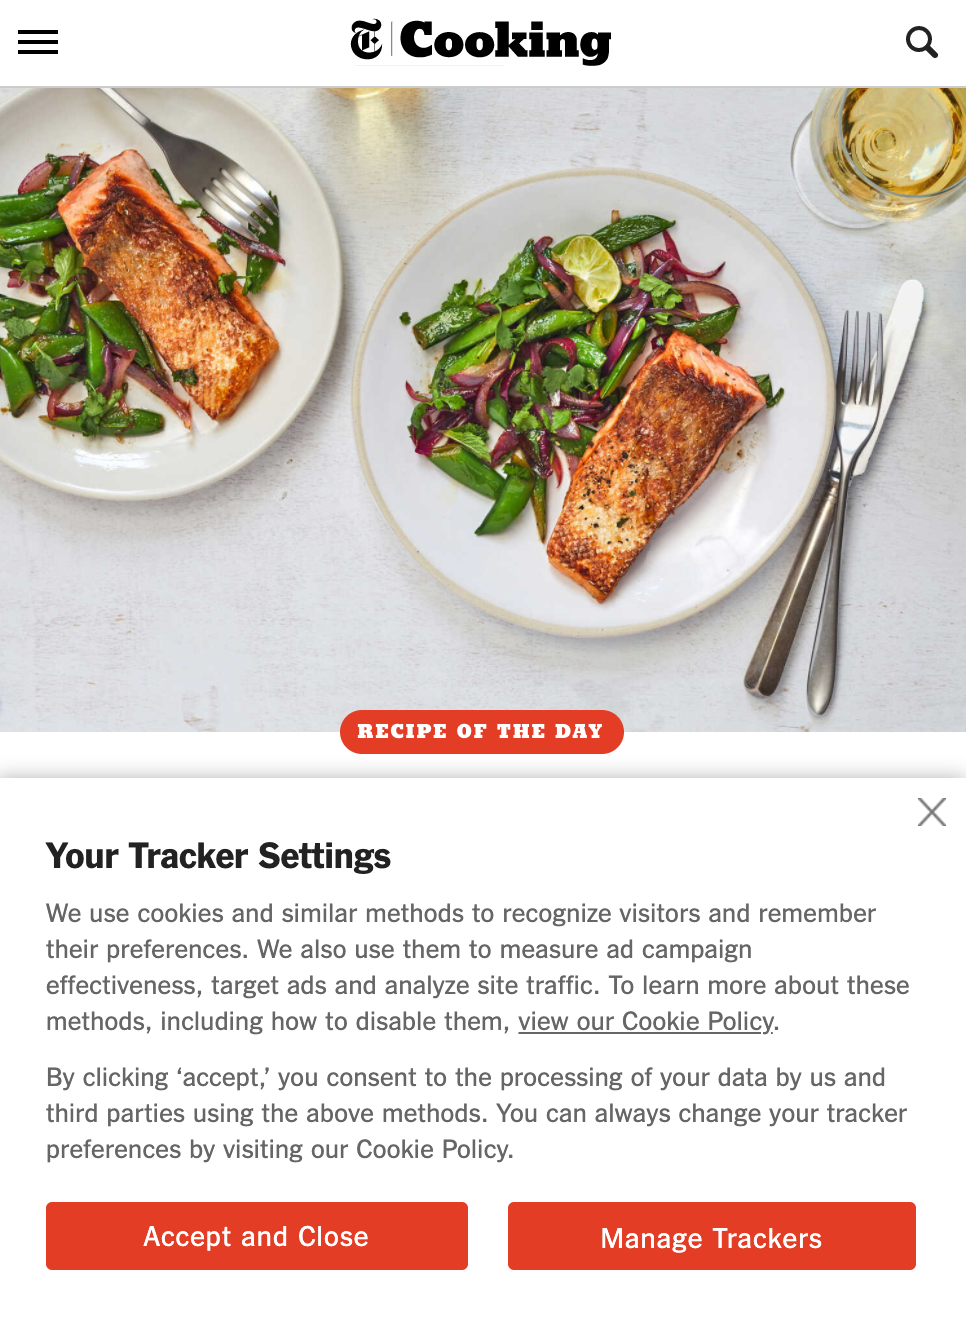 """A screenshot of a NYT Cooking page that shows a banner titled """"Your Tracker Settings"""" on the lower portion of the screen. The banner allows users to accept cookies or manage their settings."""